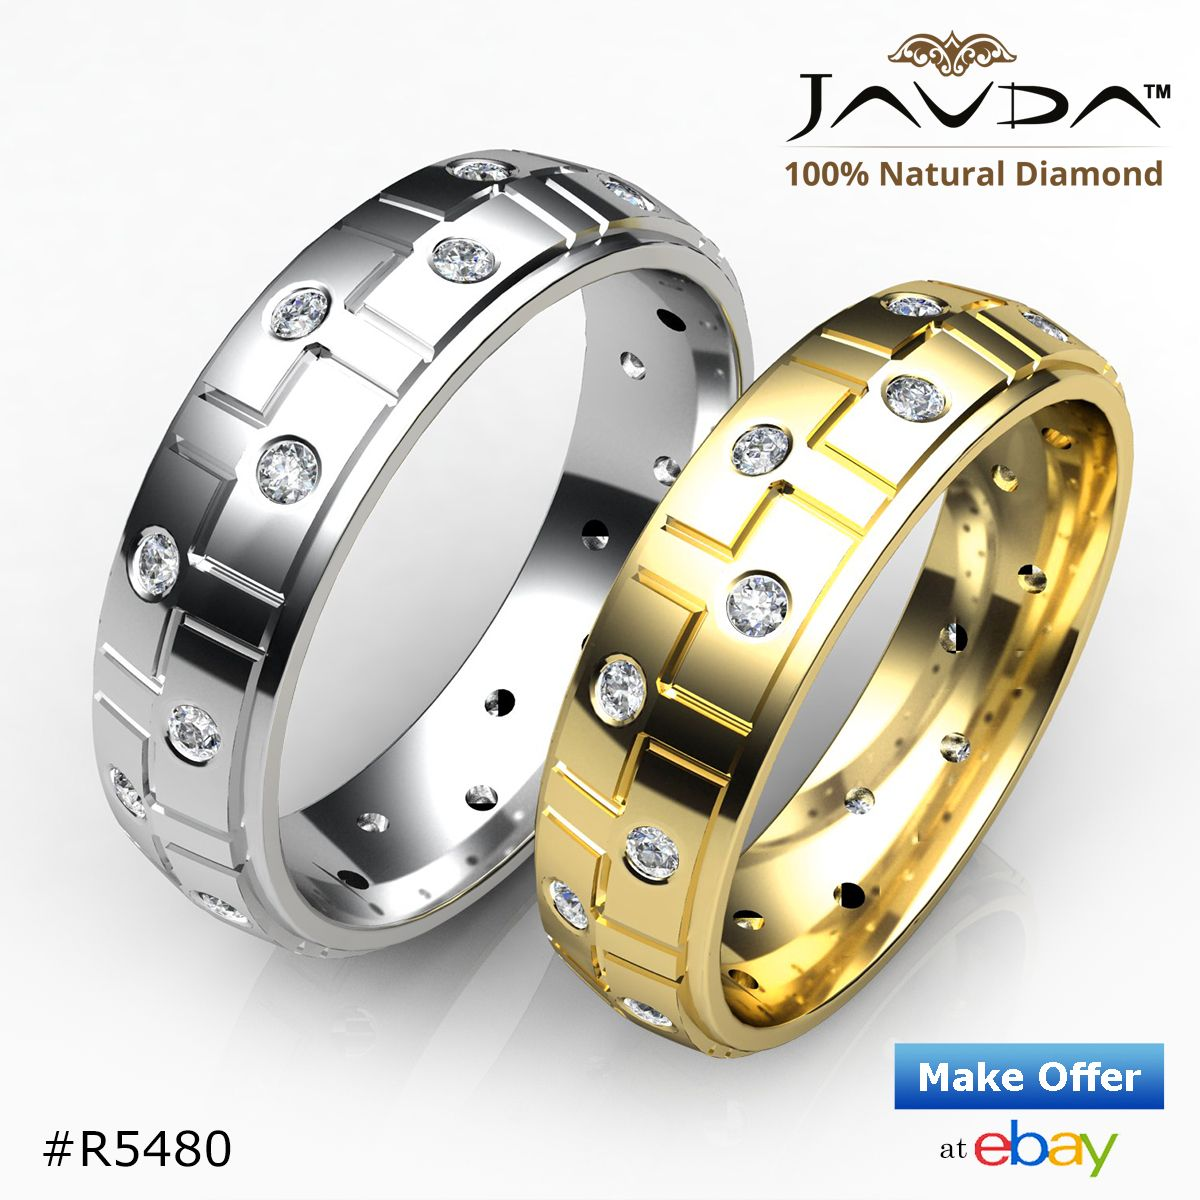 Modern men's wedding band collection made in 14k & 18k